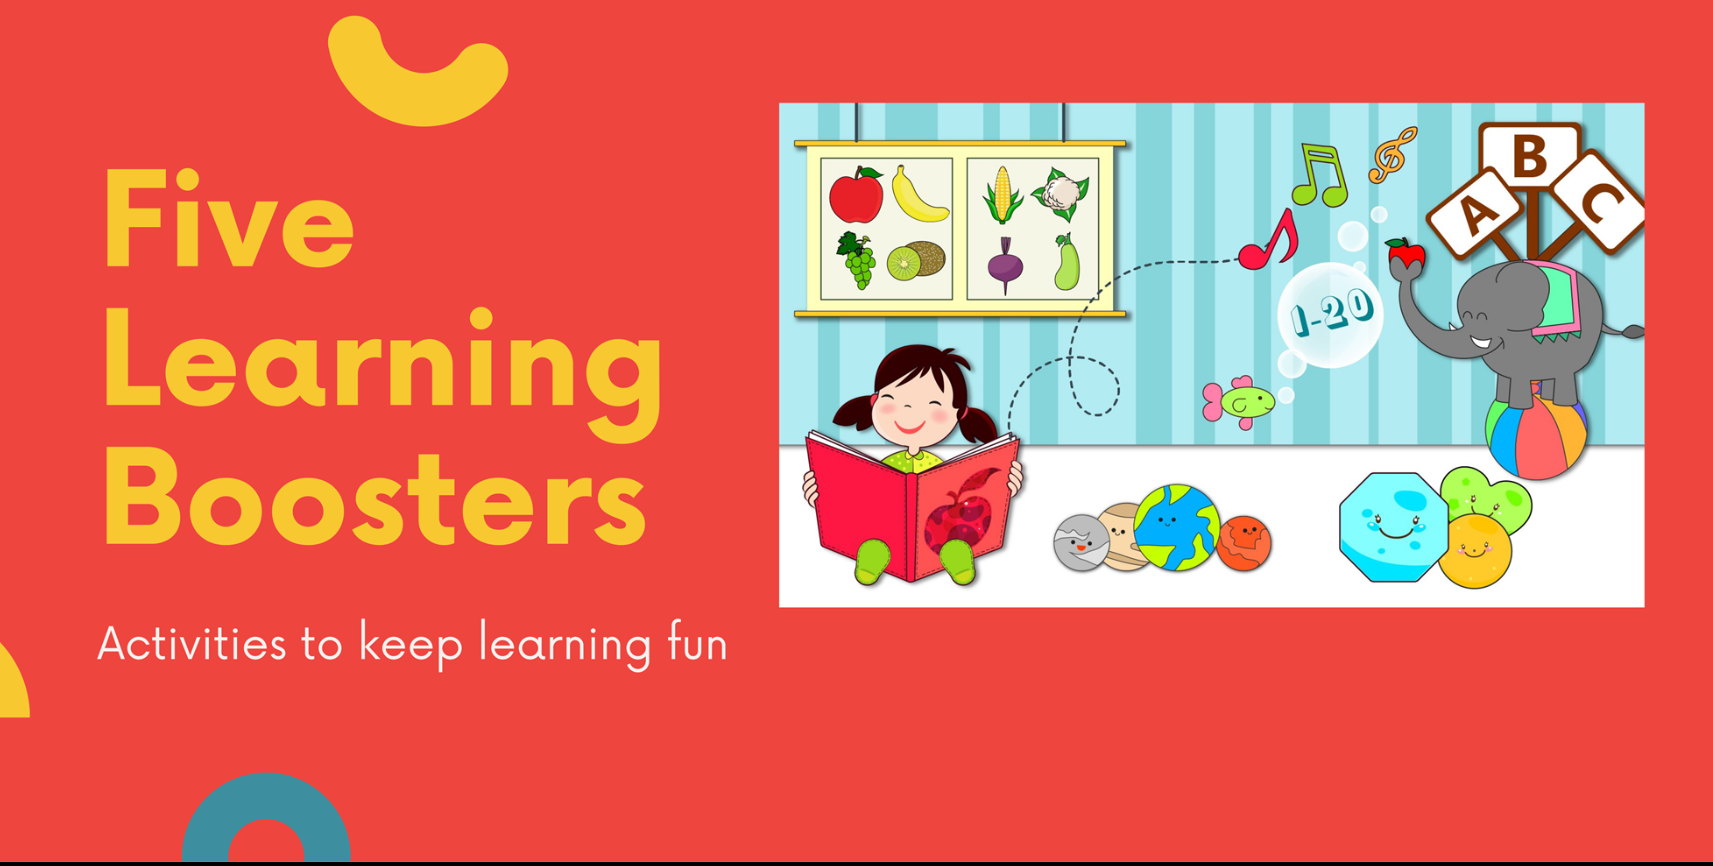 Engaging Activities to Help Your Kids Learn While Having Fun